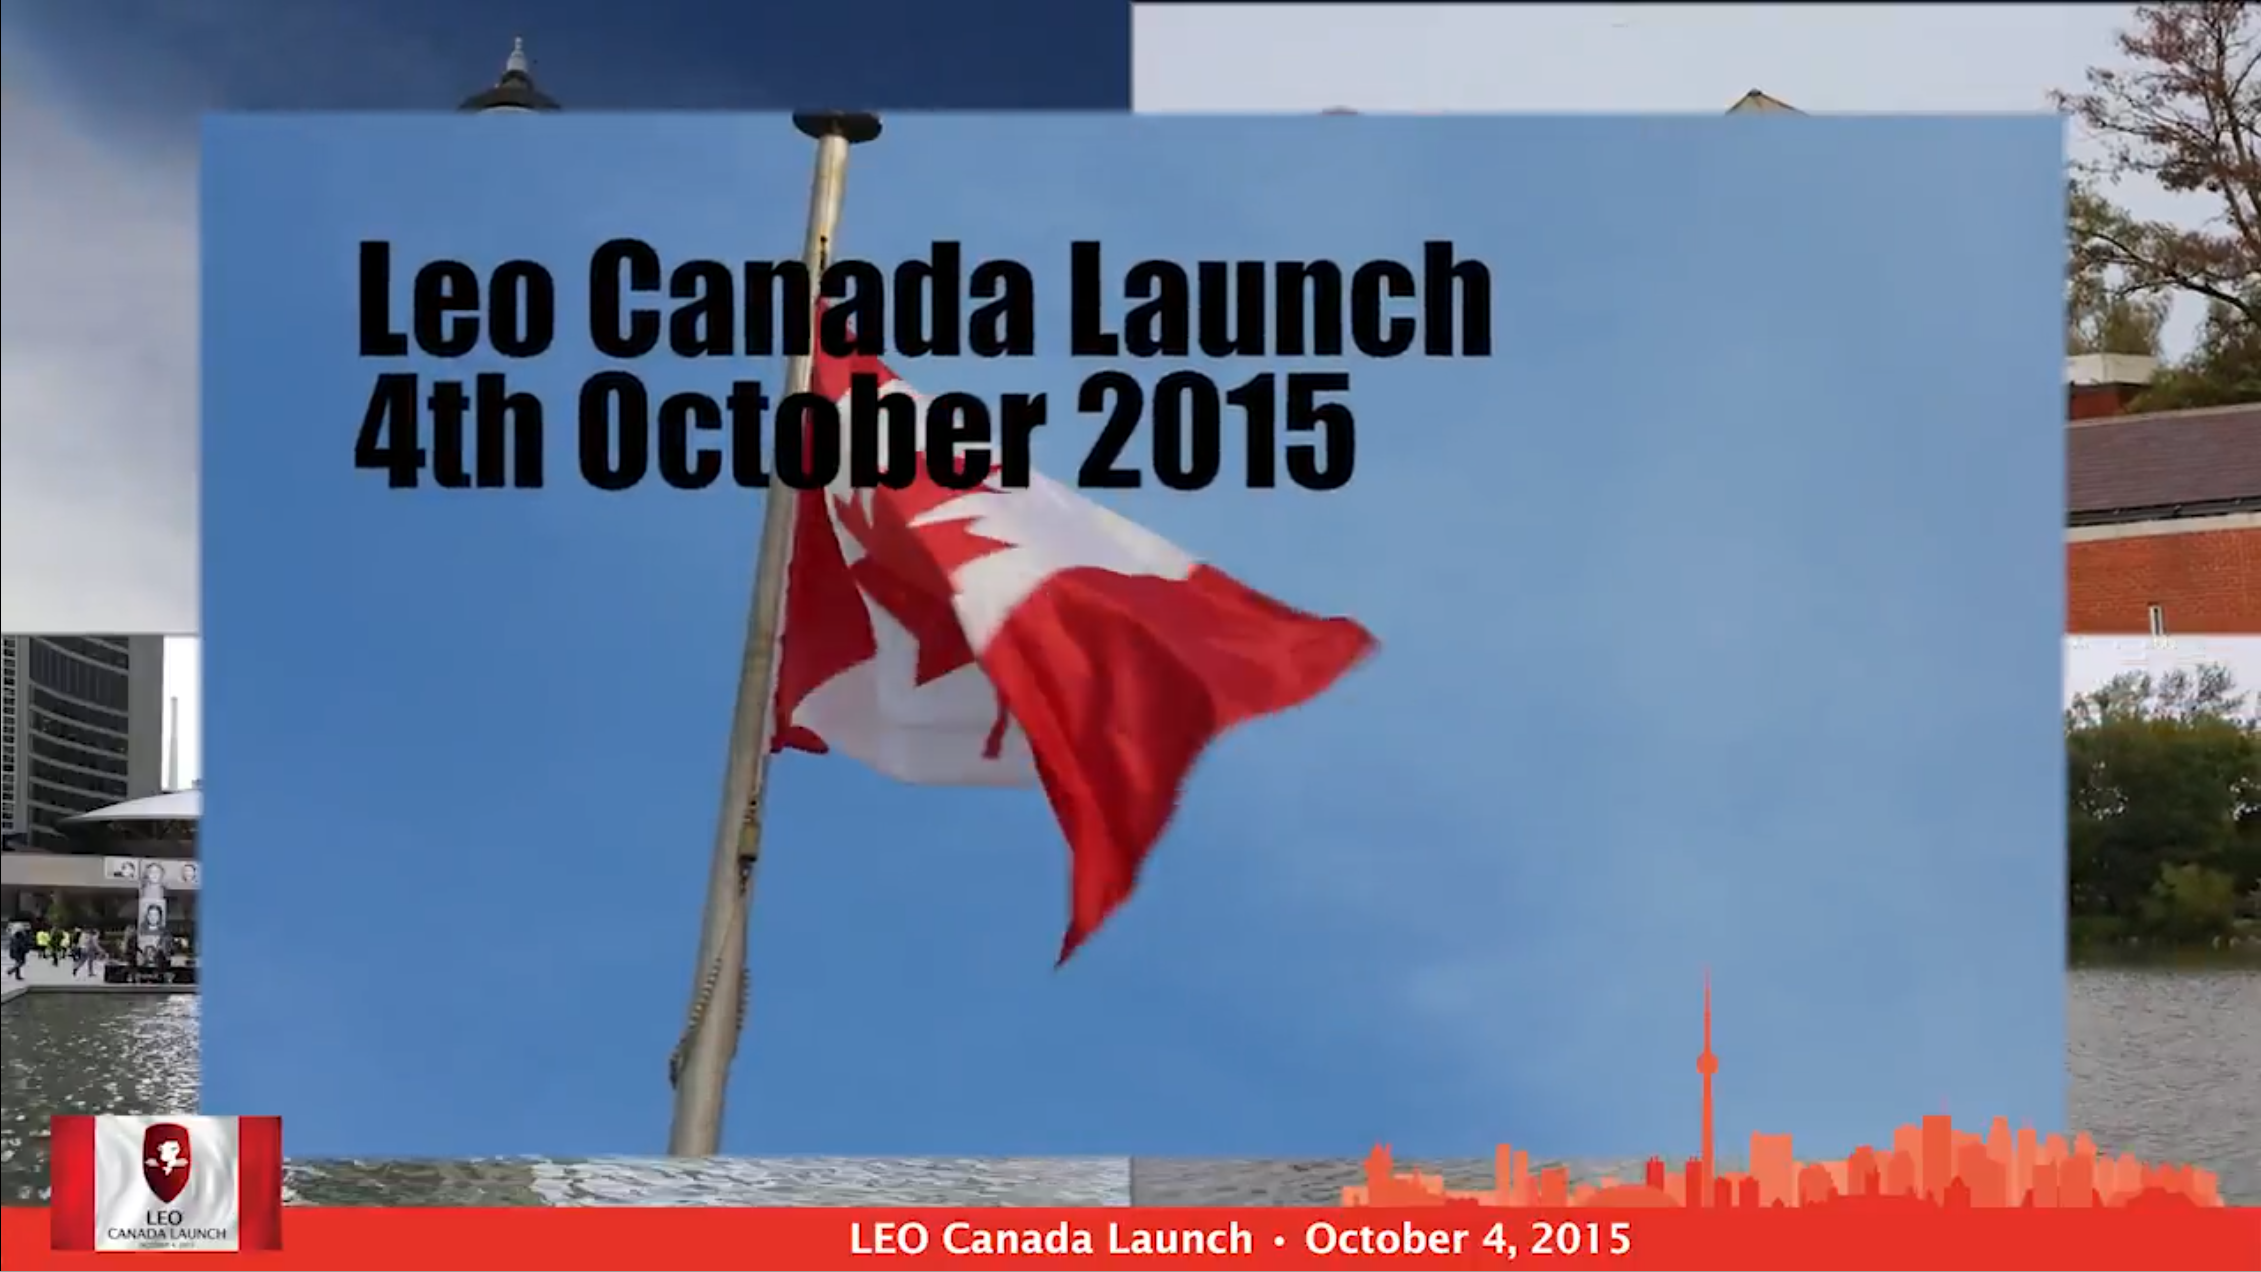 LEO Canada Launch, Highlights, October 2015